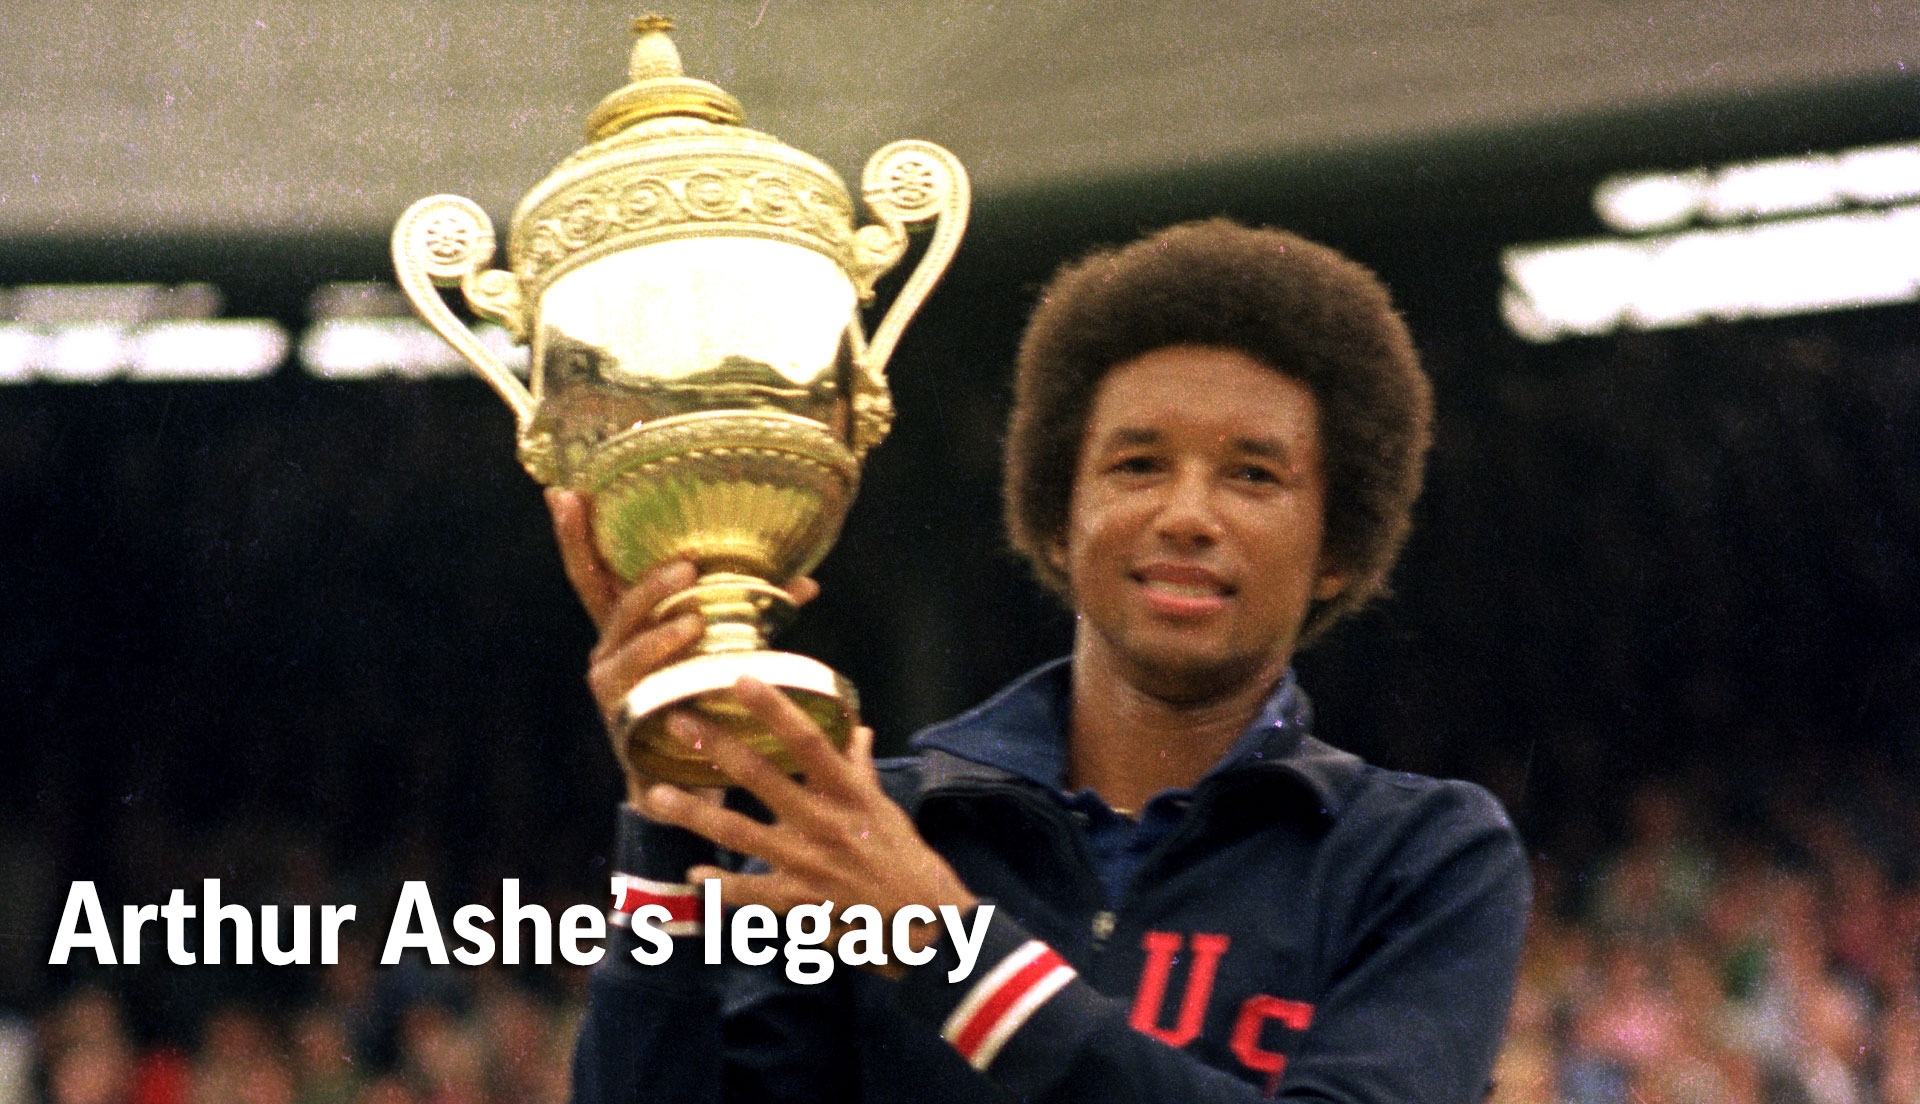 When Arthur Ashe made history at Wimbledon Press Herald